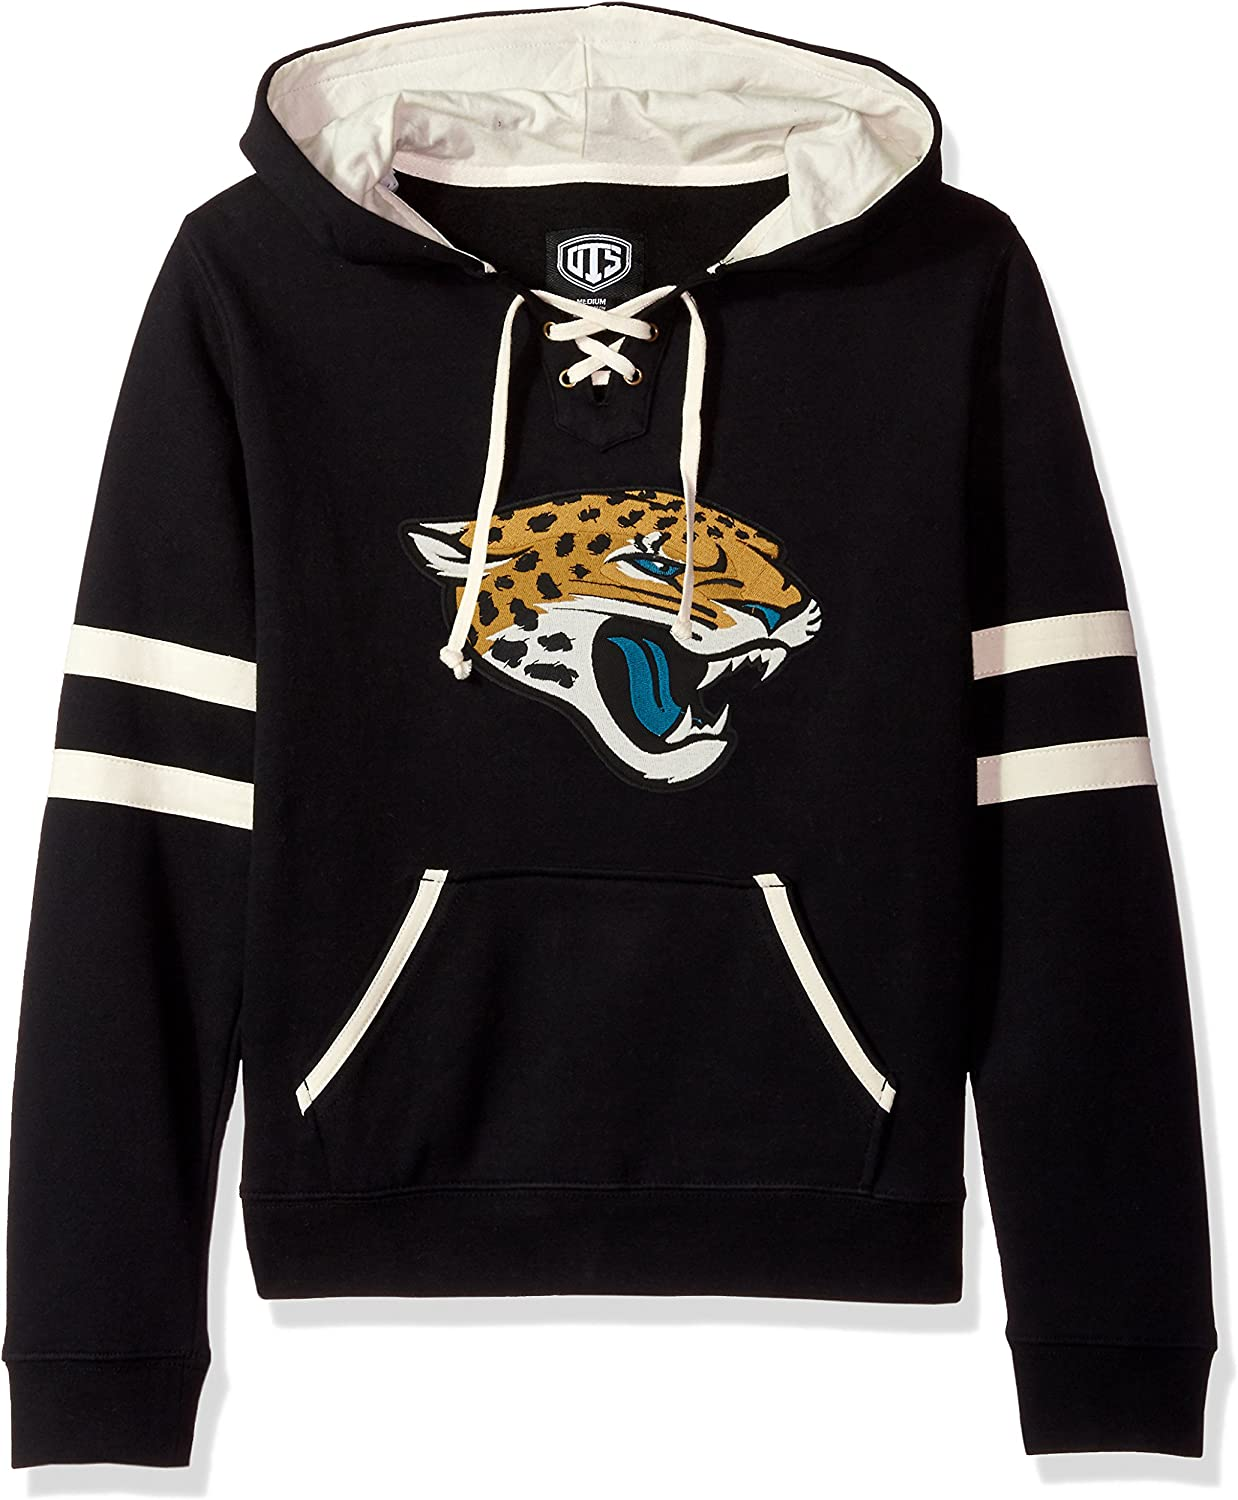 Large OTS NFL Jacksonville Jaguars Womens Grant Lace Up Pullover Hoodie Logo